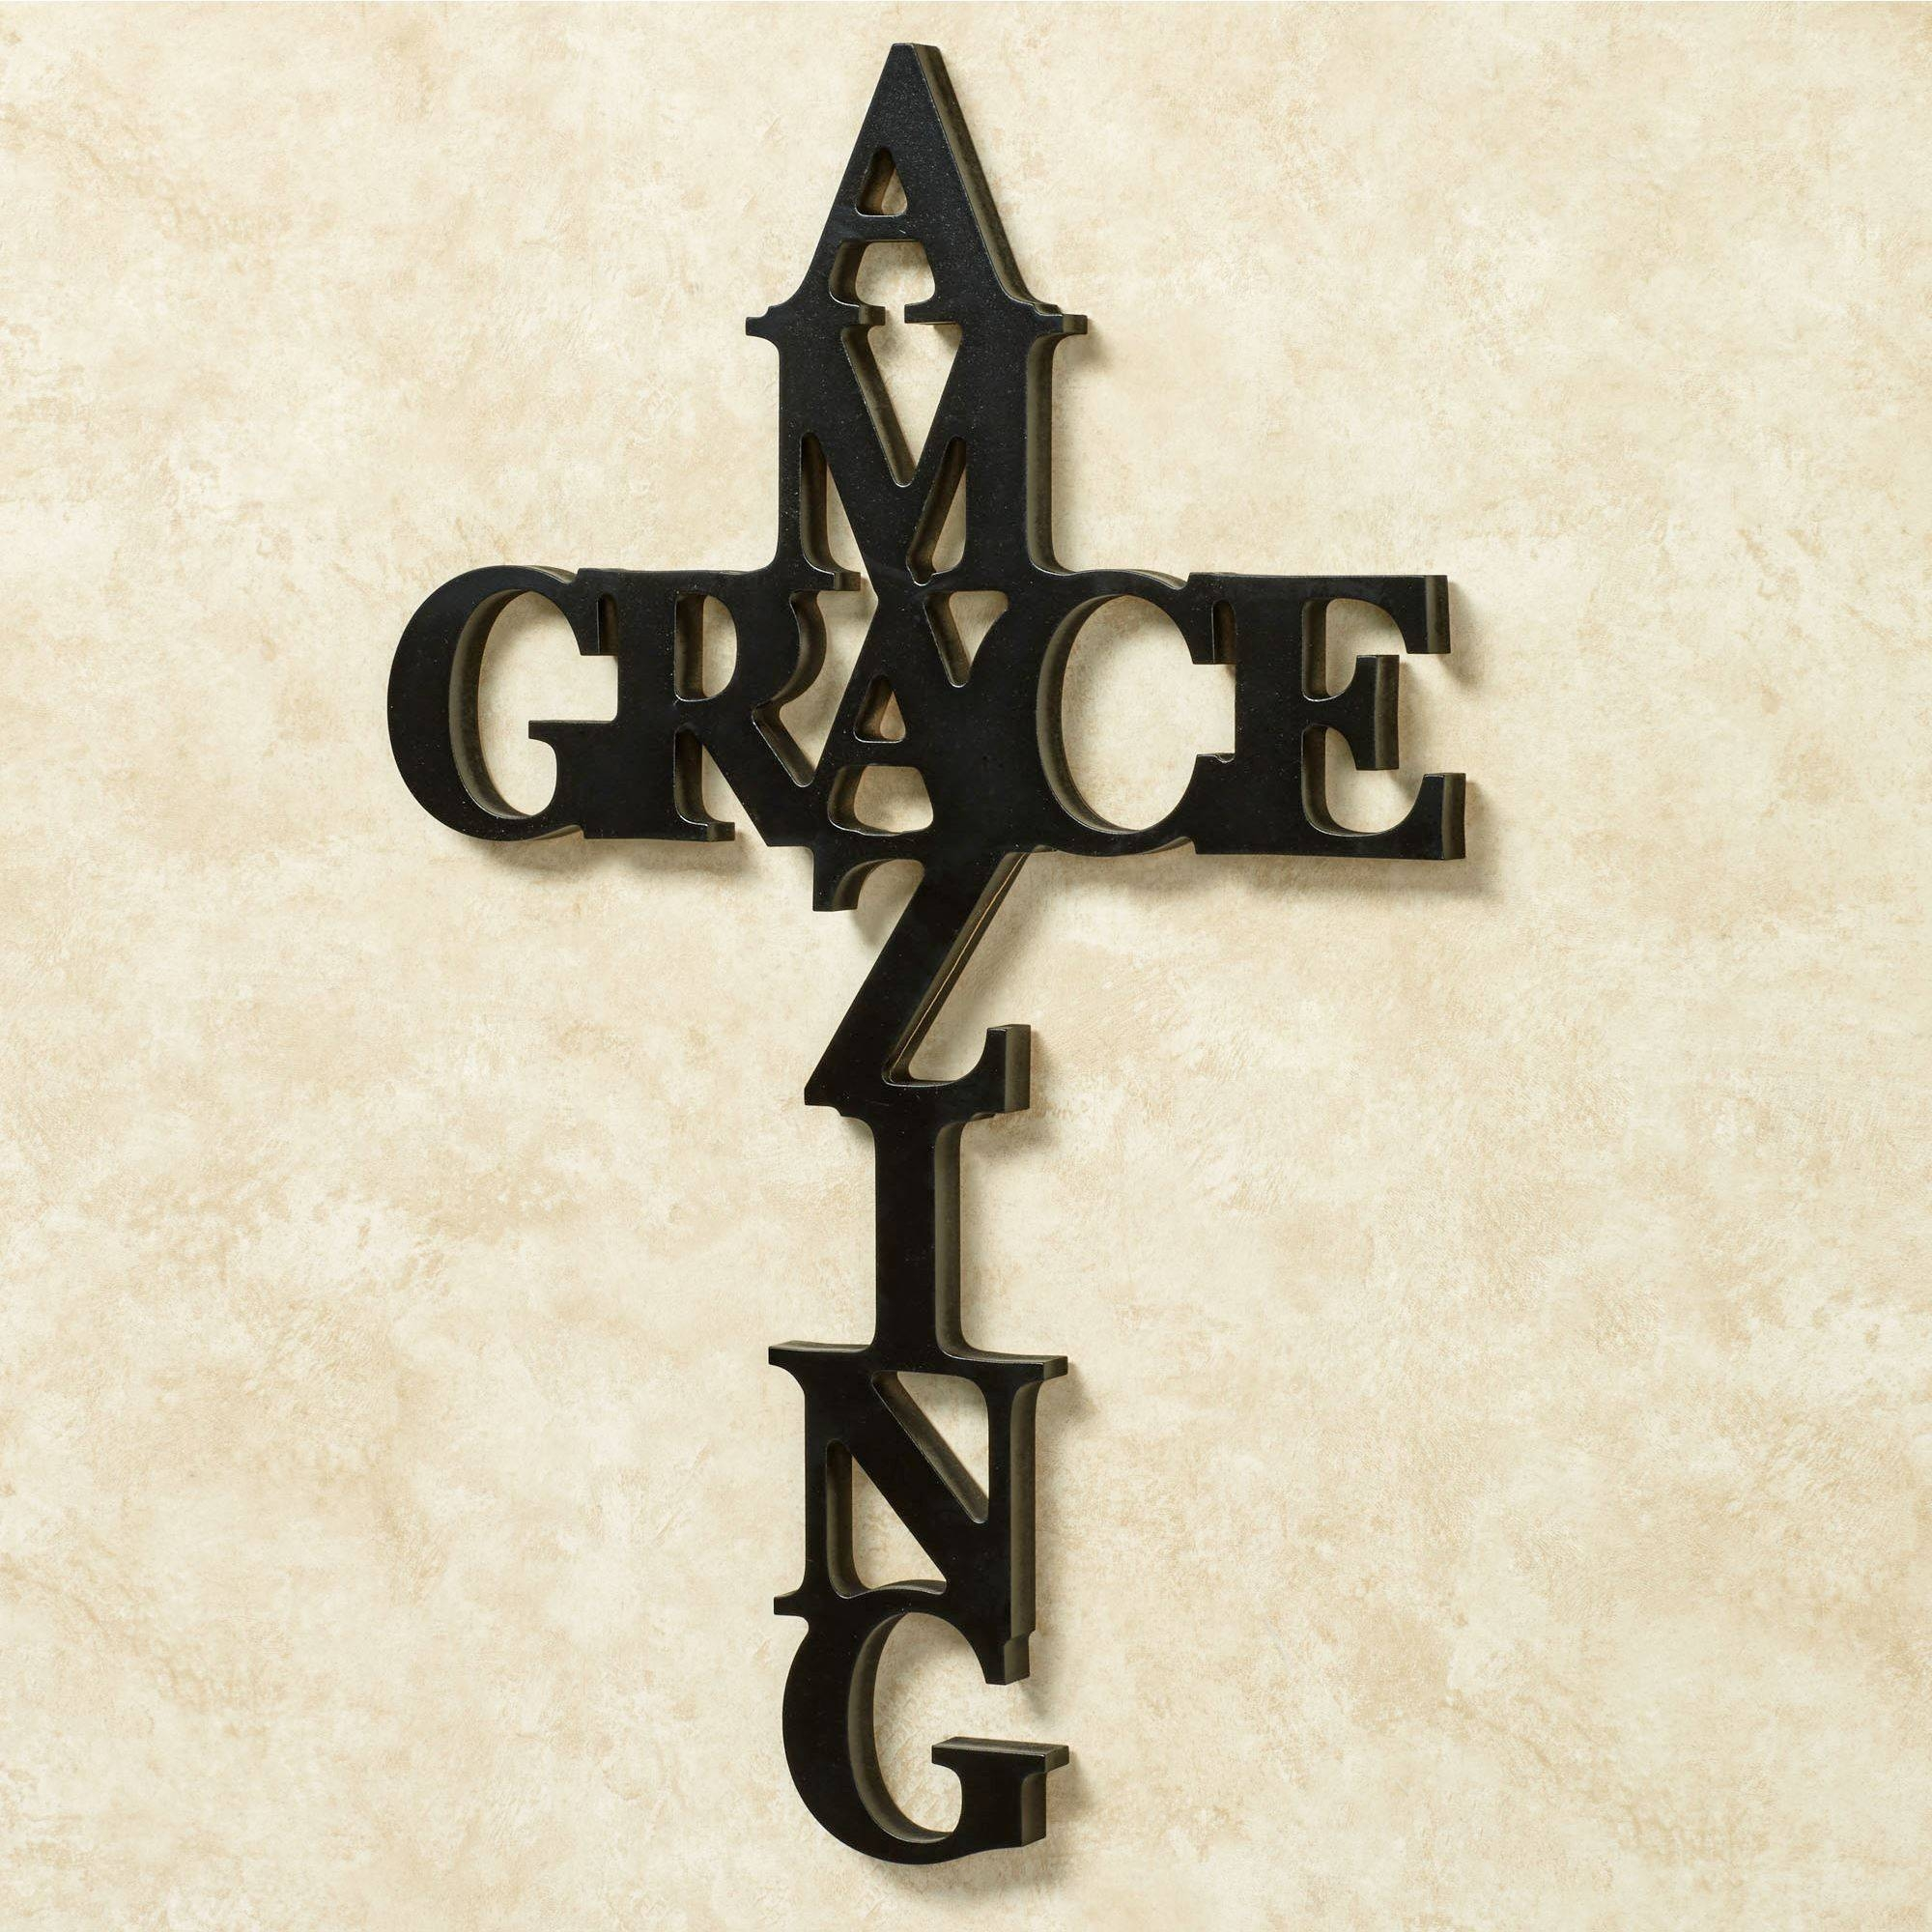 Amazing Grace Word Cross Wall Art Intended For Latest Grace Wall Art (View 8 of 25)